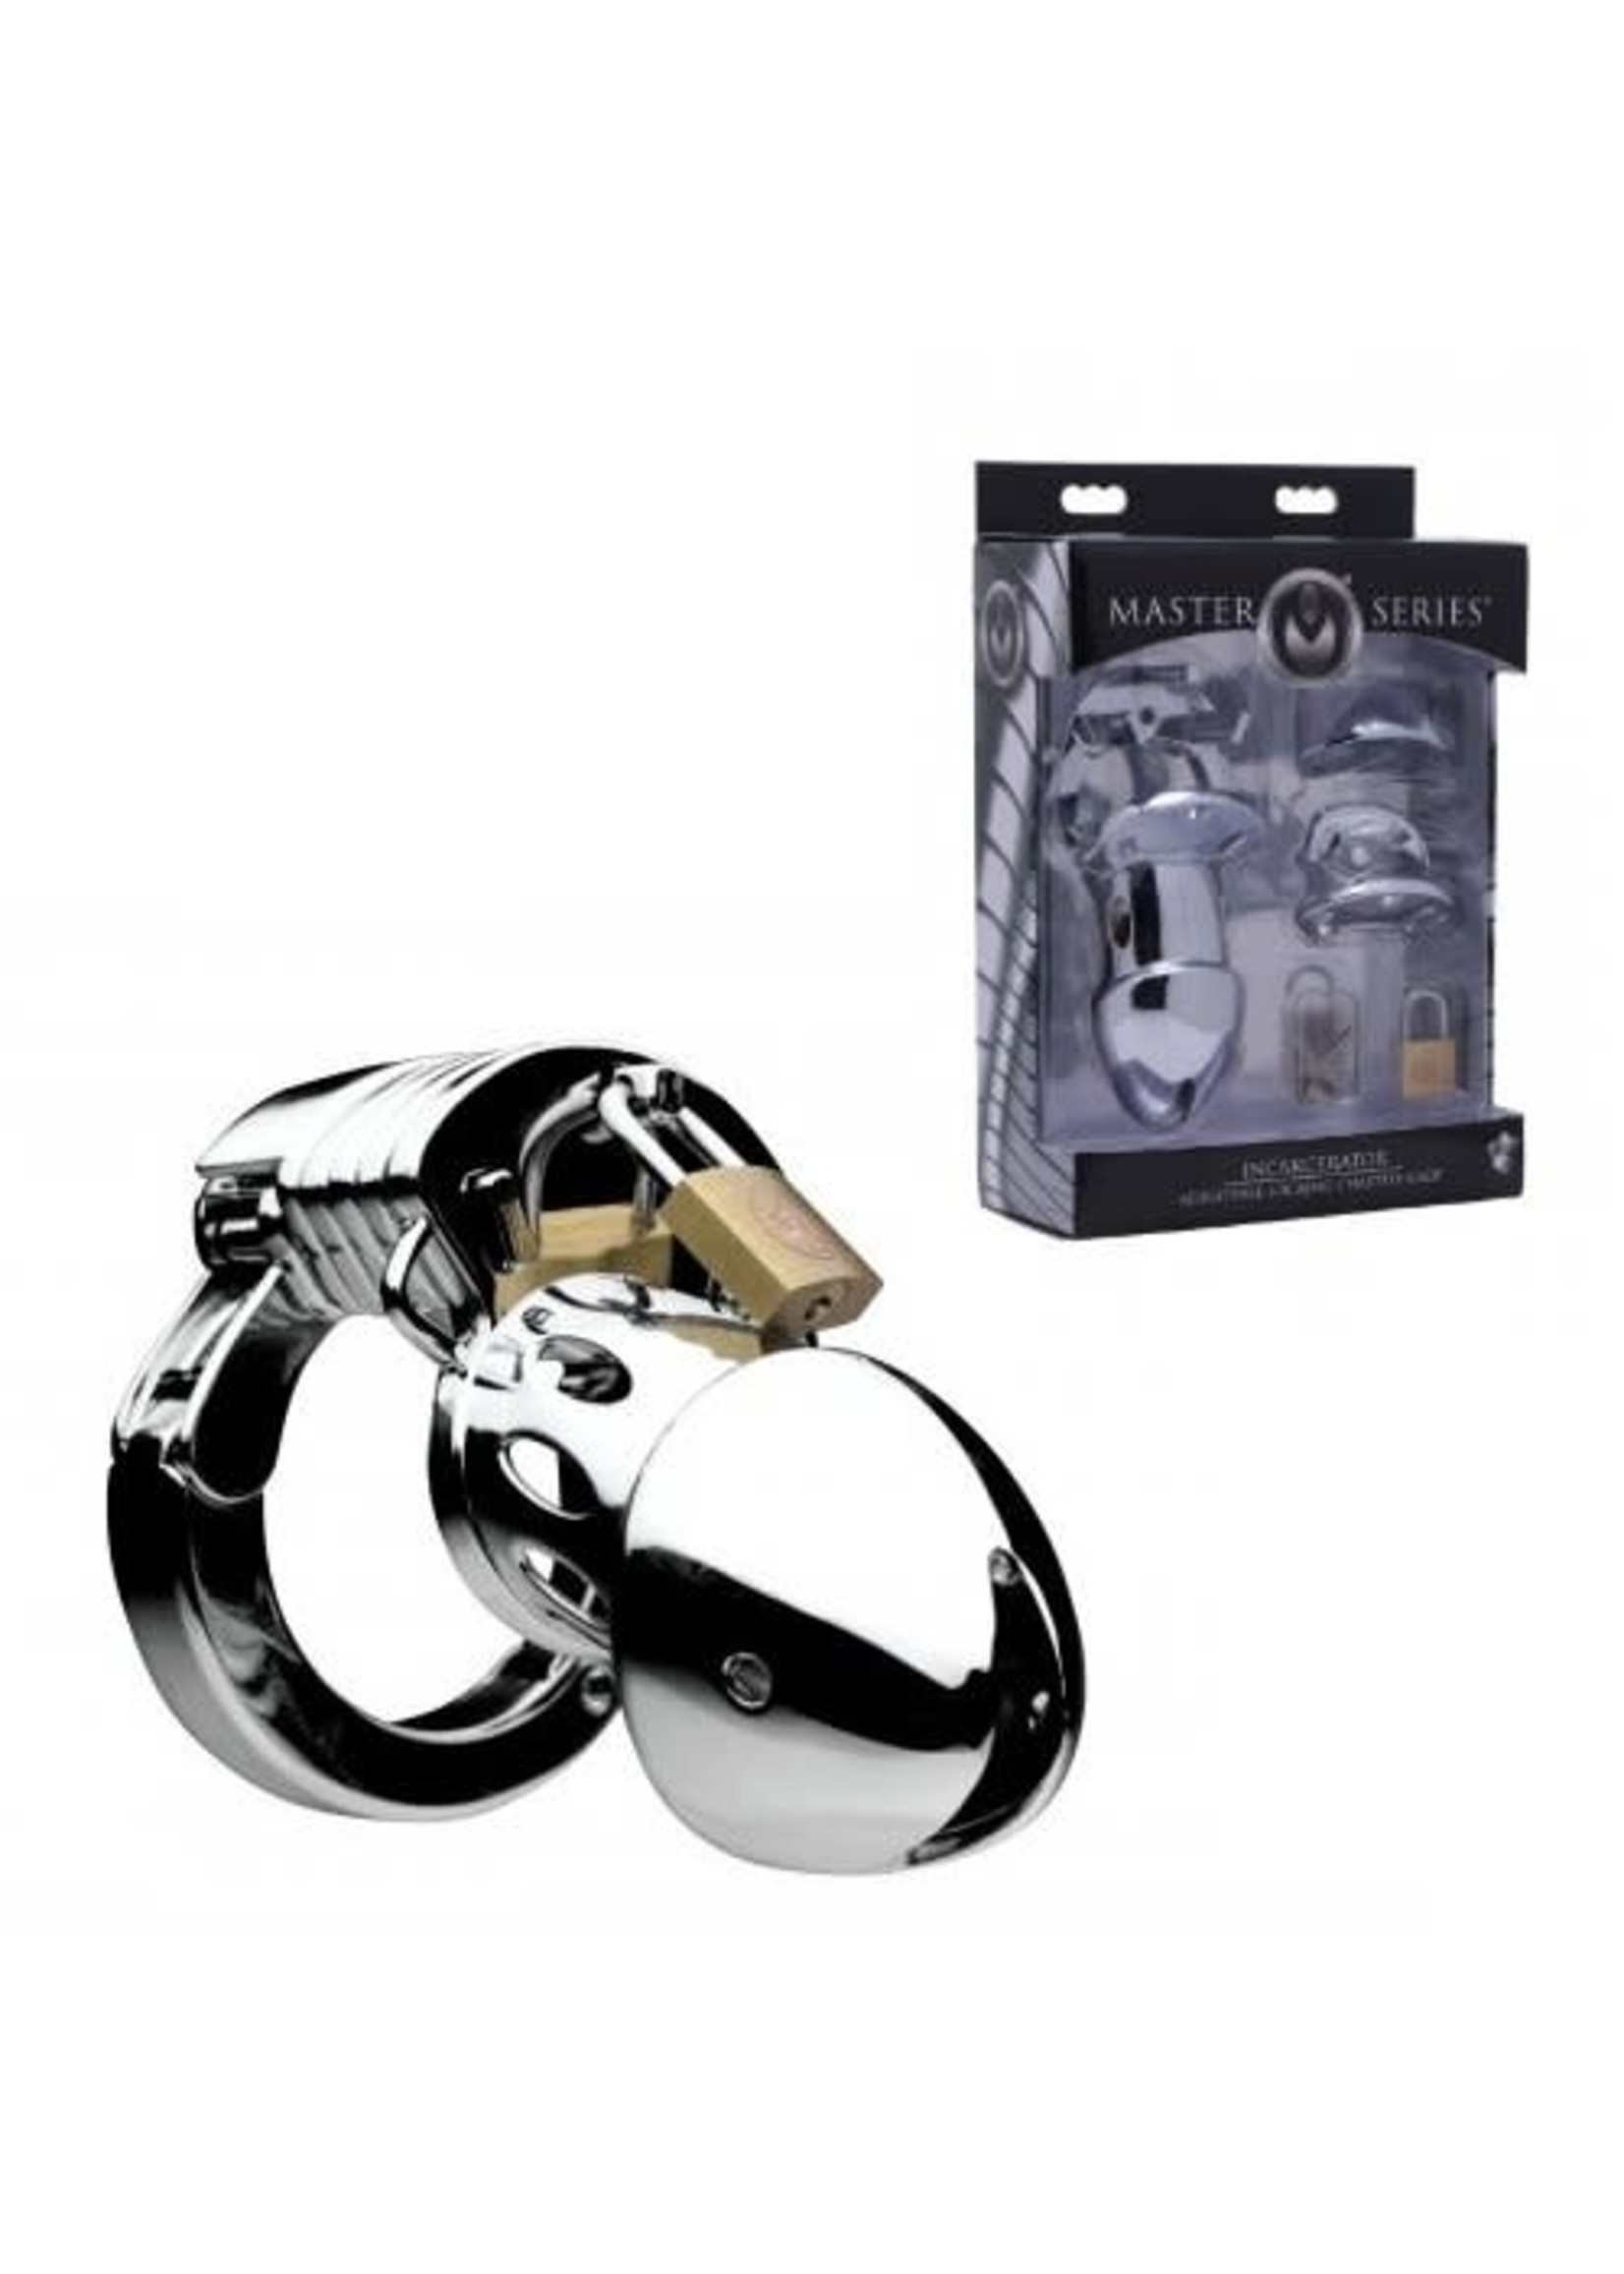 Master Series Master Series Incarcerator Chastity Cage